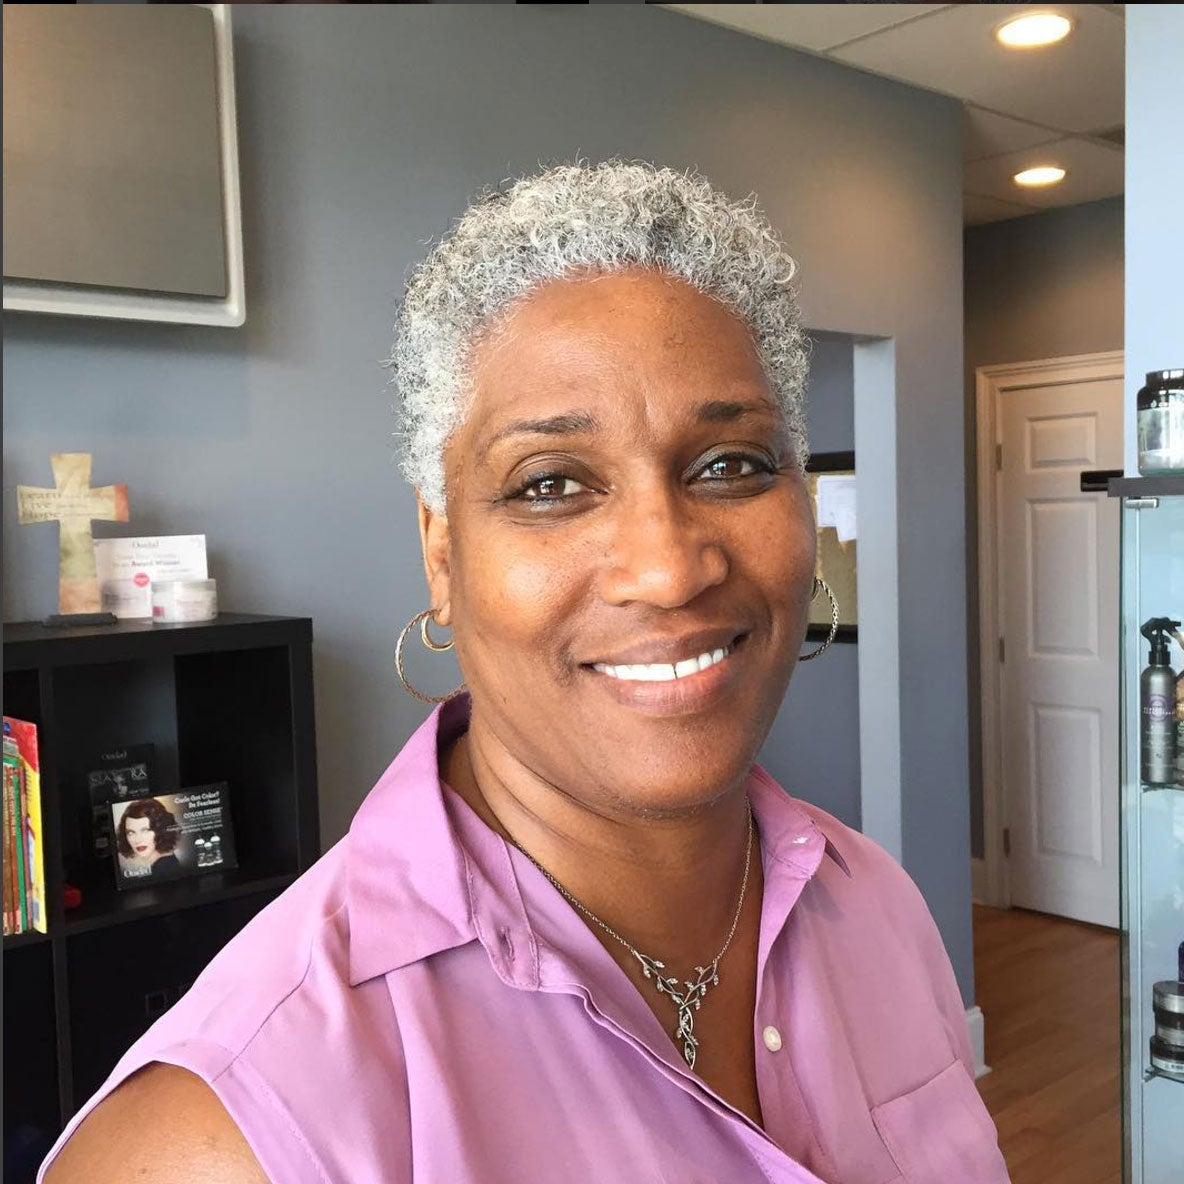 African American Salt And Pepper Hairstyles: Beautiful Black Woman With Gray Hair